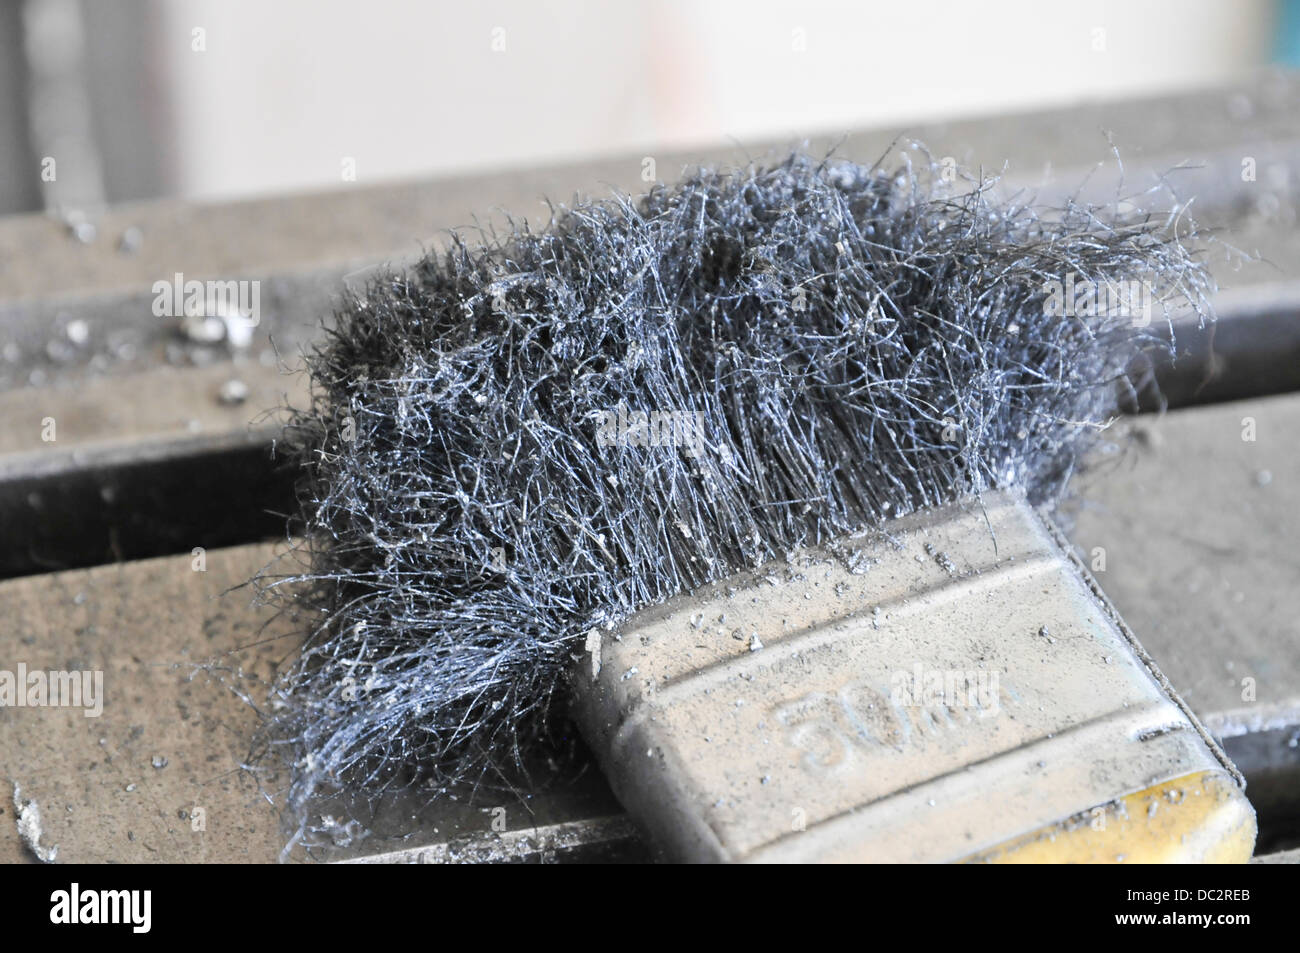 Steel Wire Brush Tool Stock Photos & Steel Wire Brush Tool Stock ...